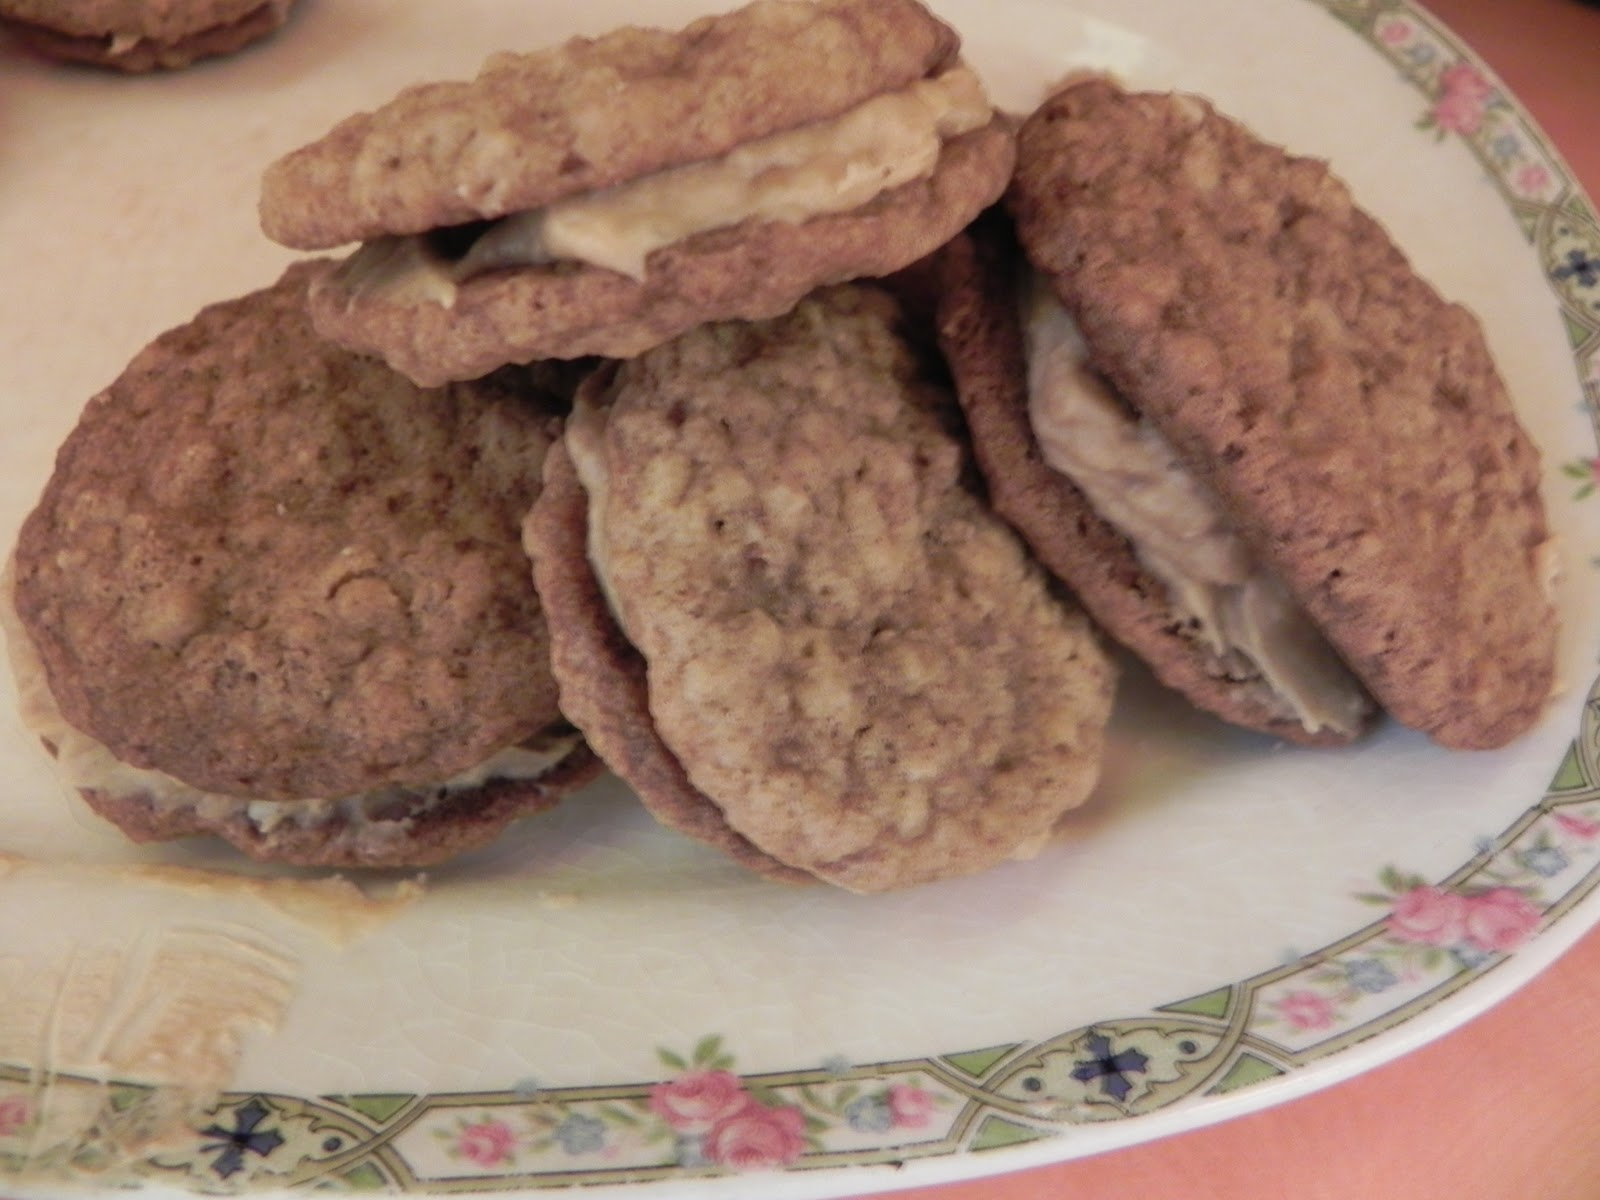 ... at Susie's: Oatmeal sandwich cookies with creamy peanut butter filling